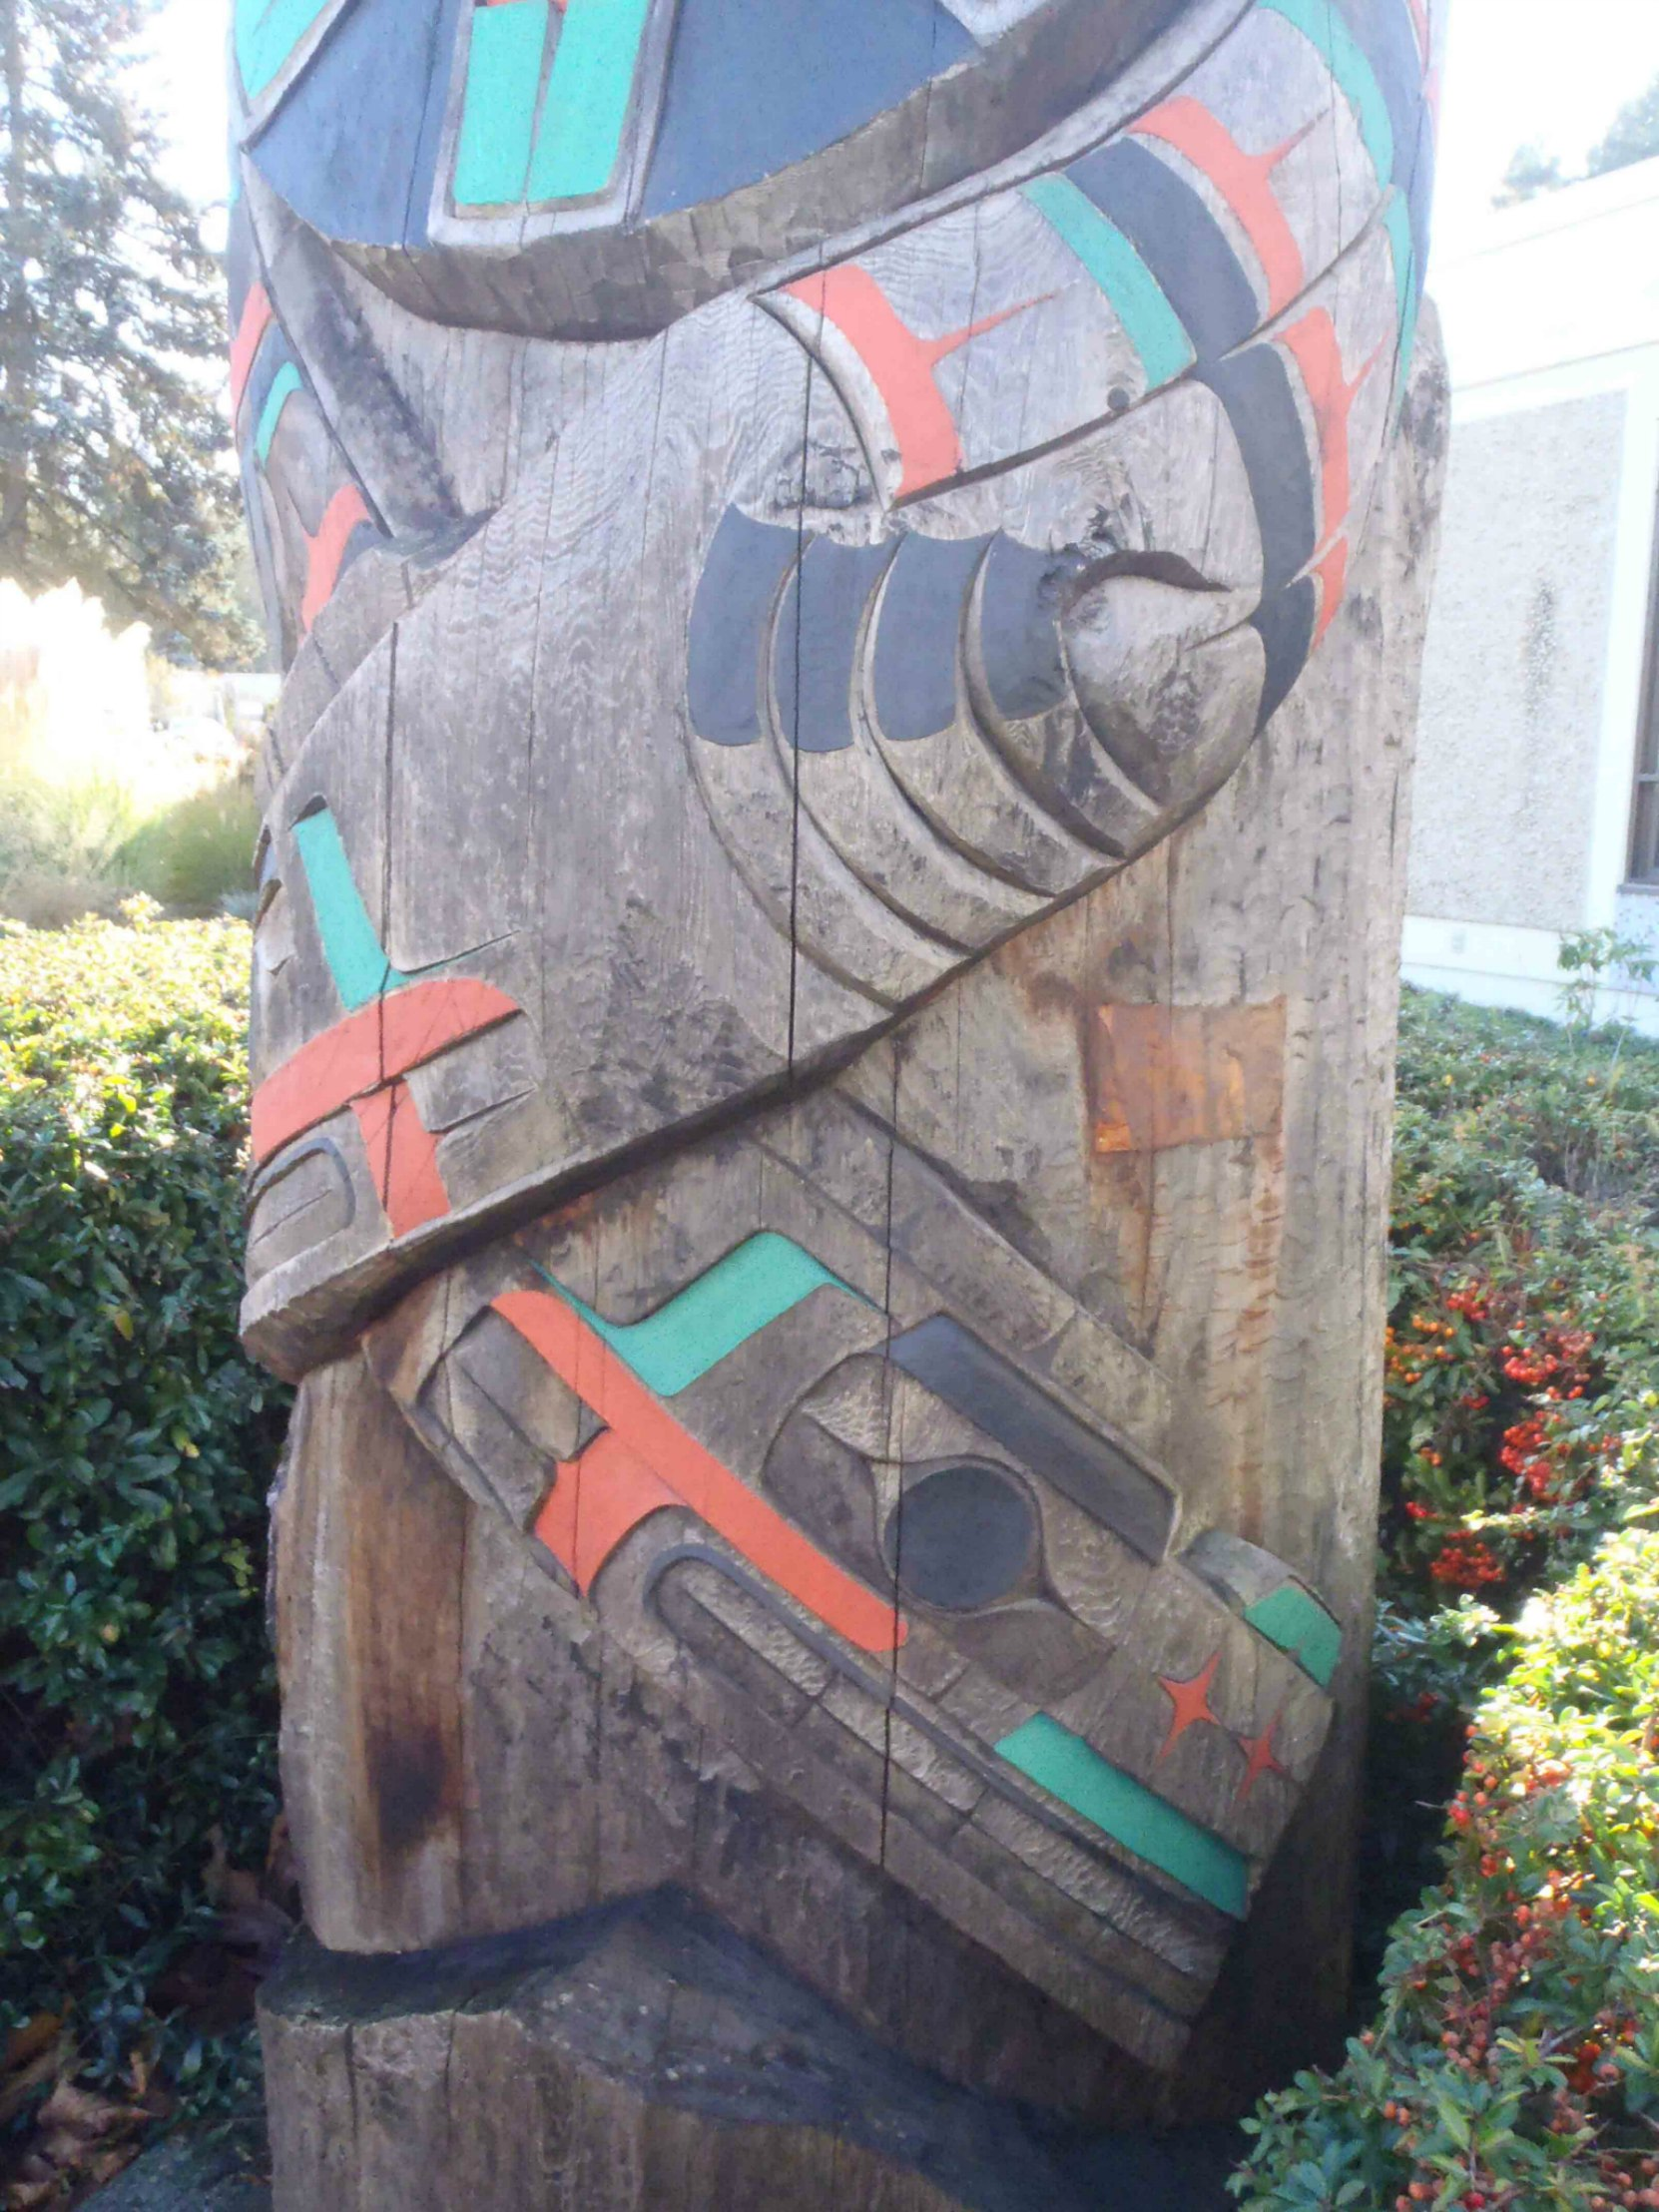 Peaceful Boundaries pole, Sea Serpent figure, outside Provincial Courthouse, Government Street, Duncan, B.C.